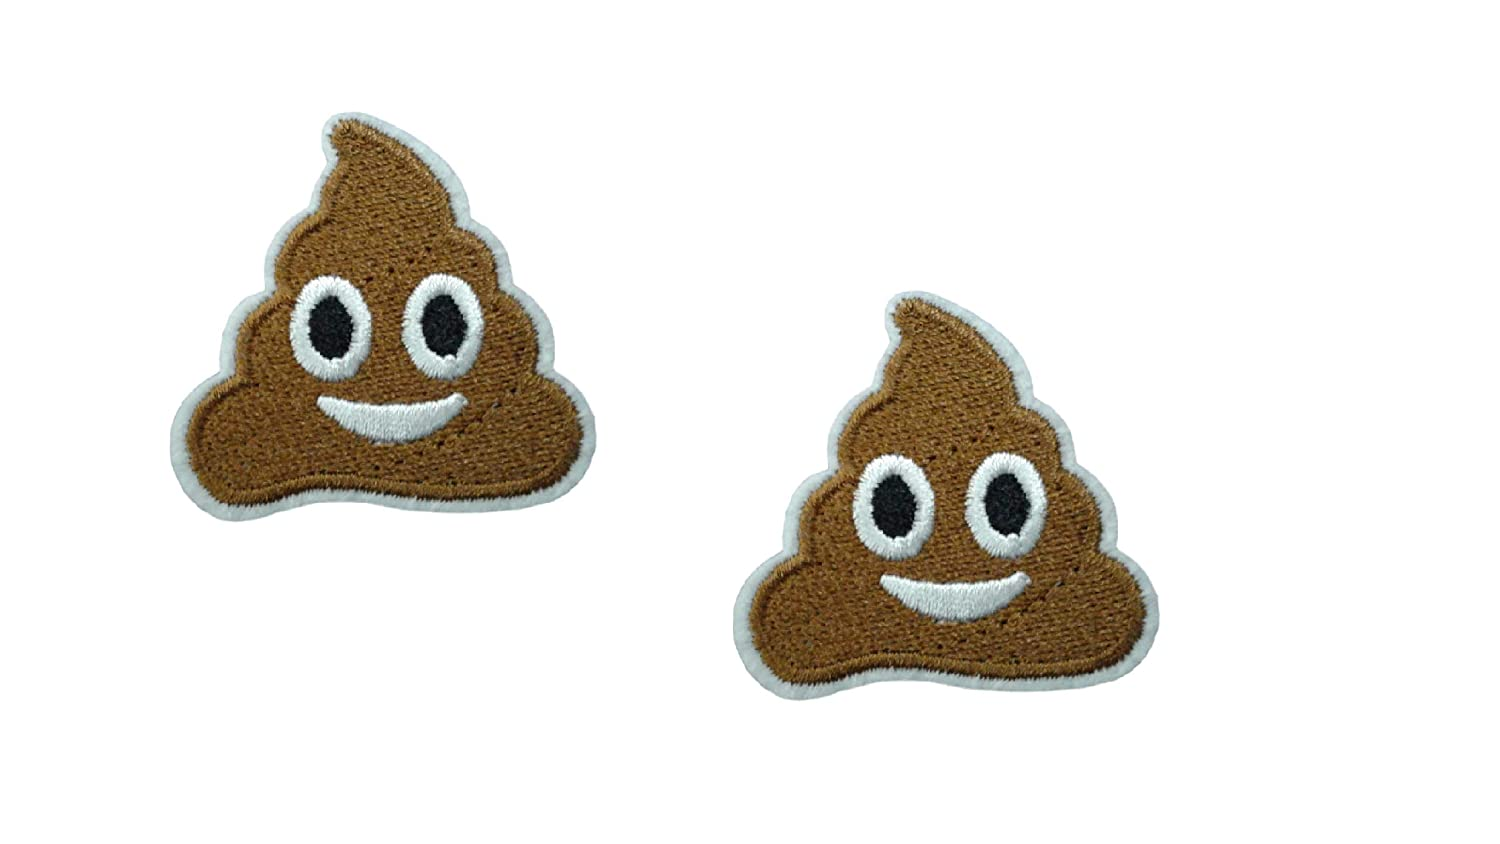 4.5 x 4.5 cm 2 Pieces Smiling Poop Iron On Patch Applique Motif Emoji Shit Poo Novelty Scrapbooking Decal 1.8 x 1.8 inches